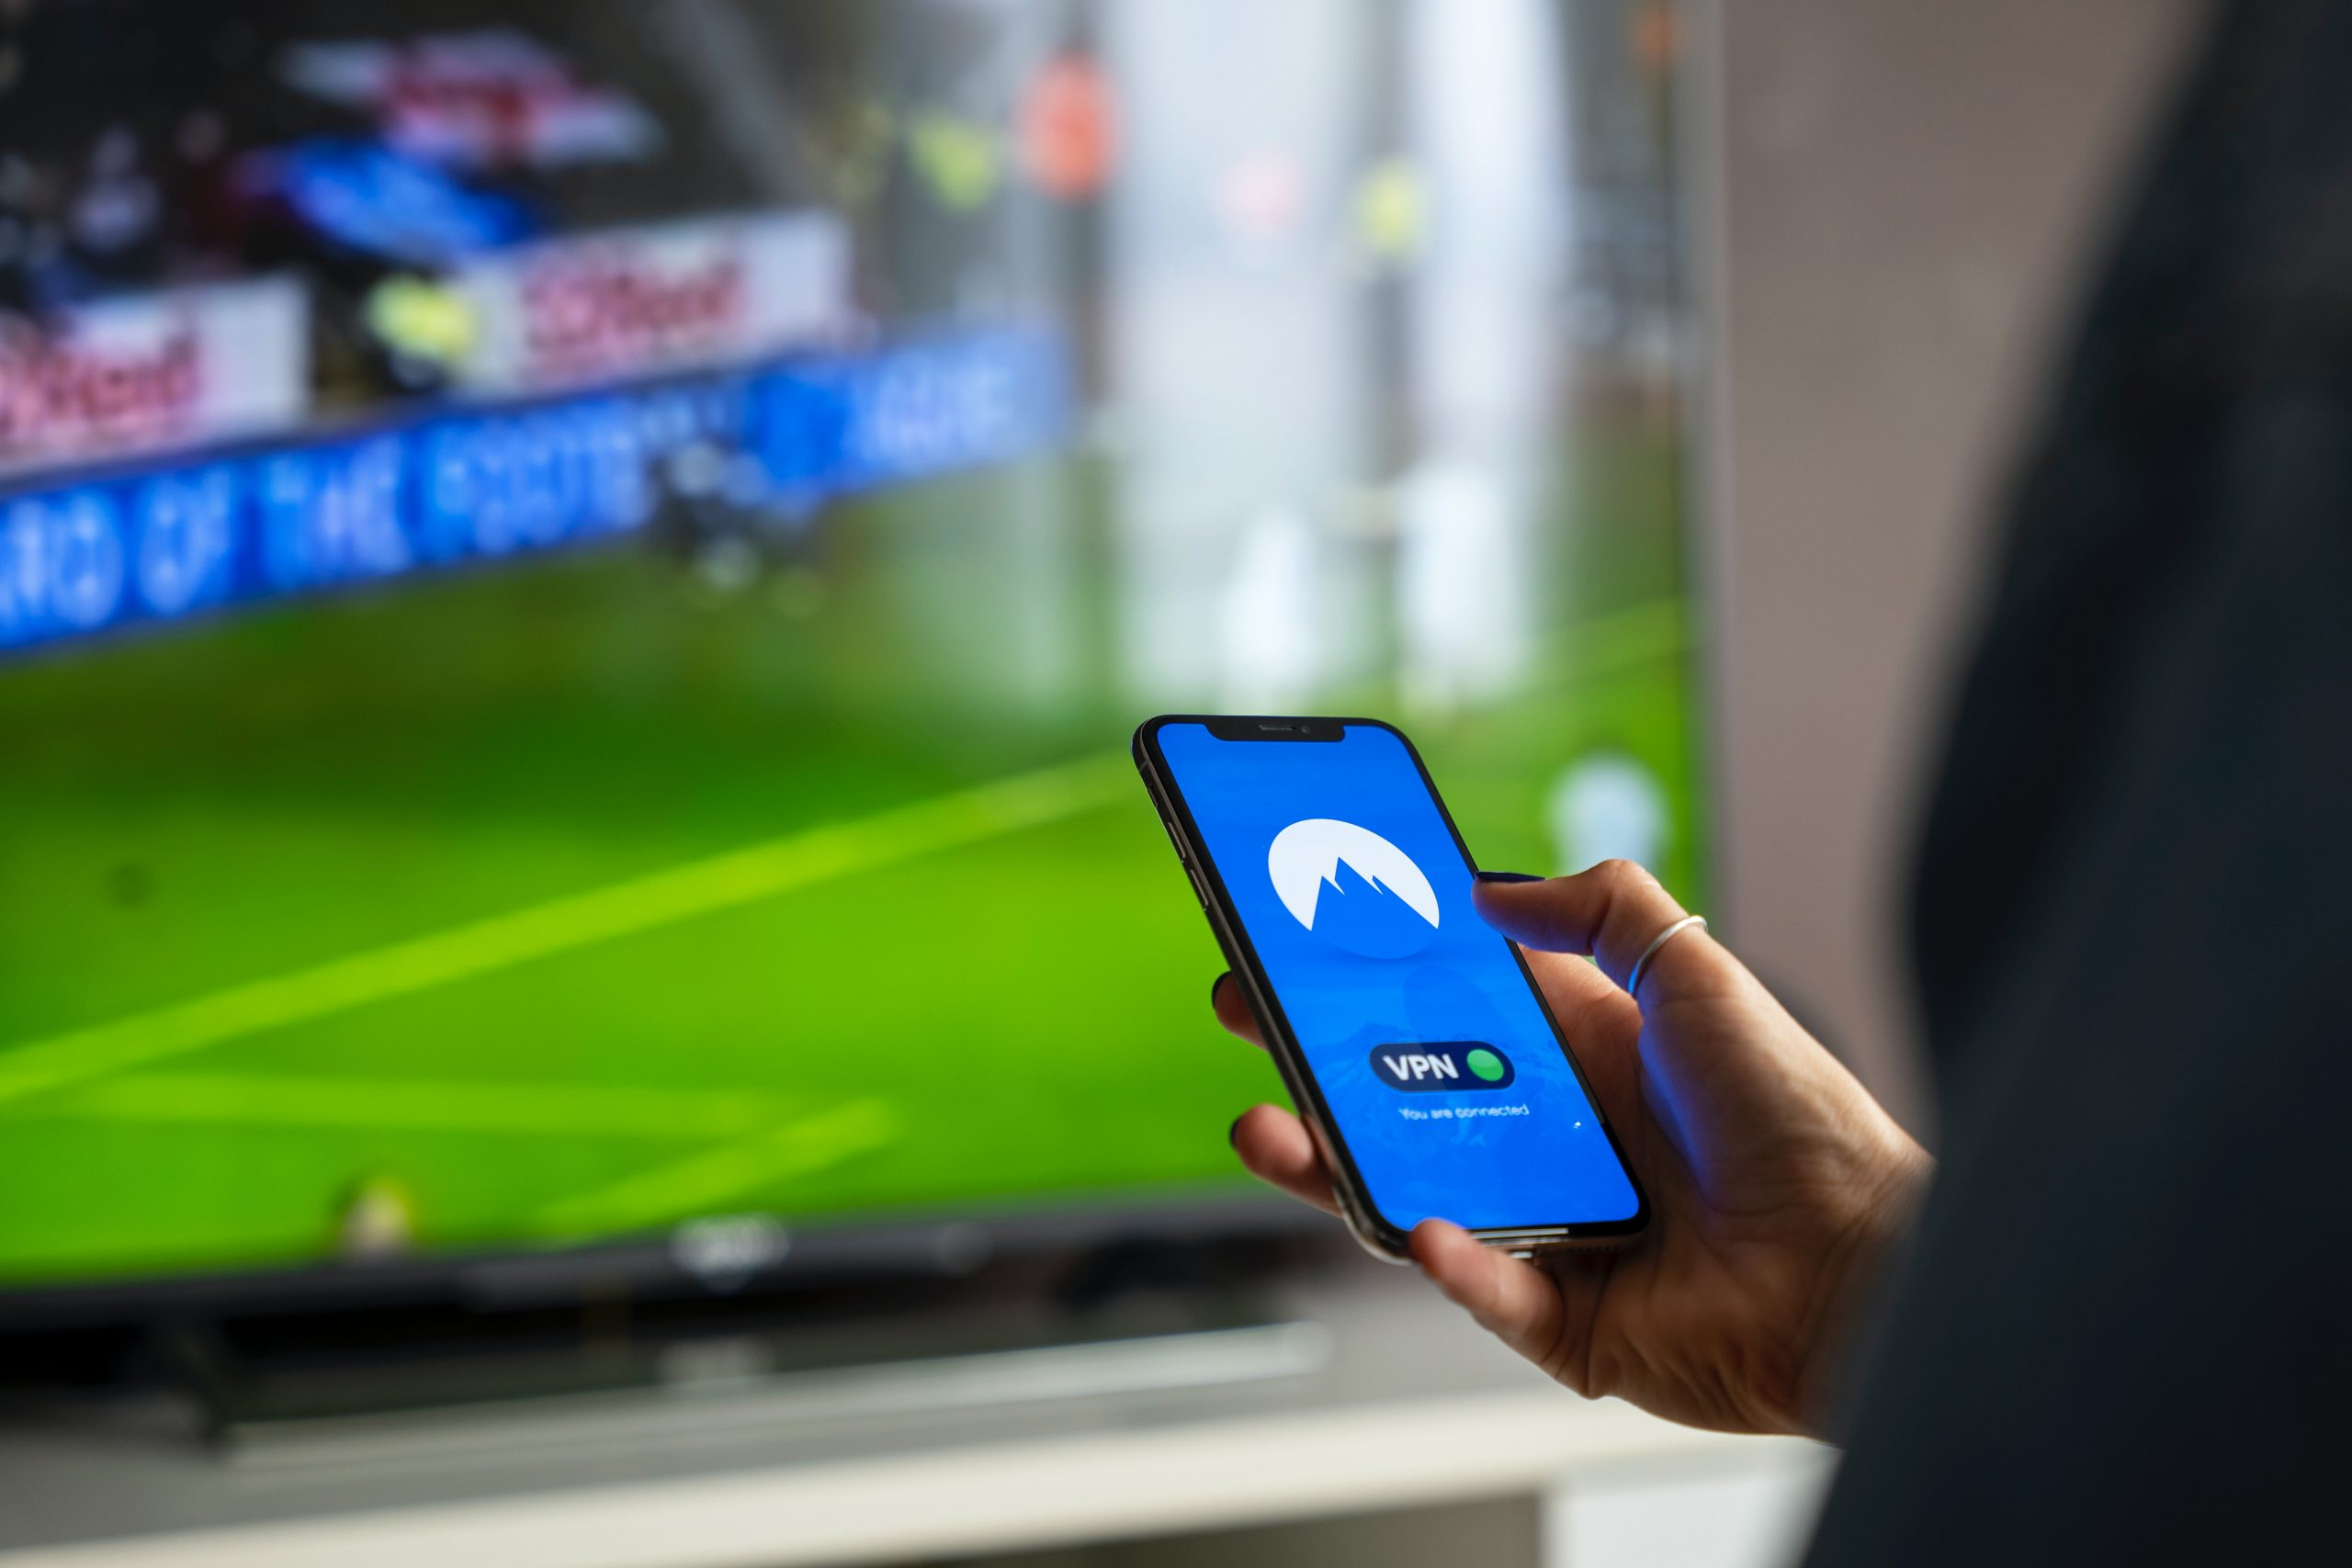 5G, The Sports Industry and COVID-19